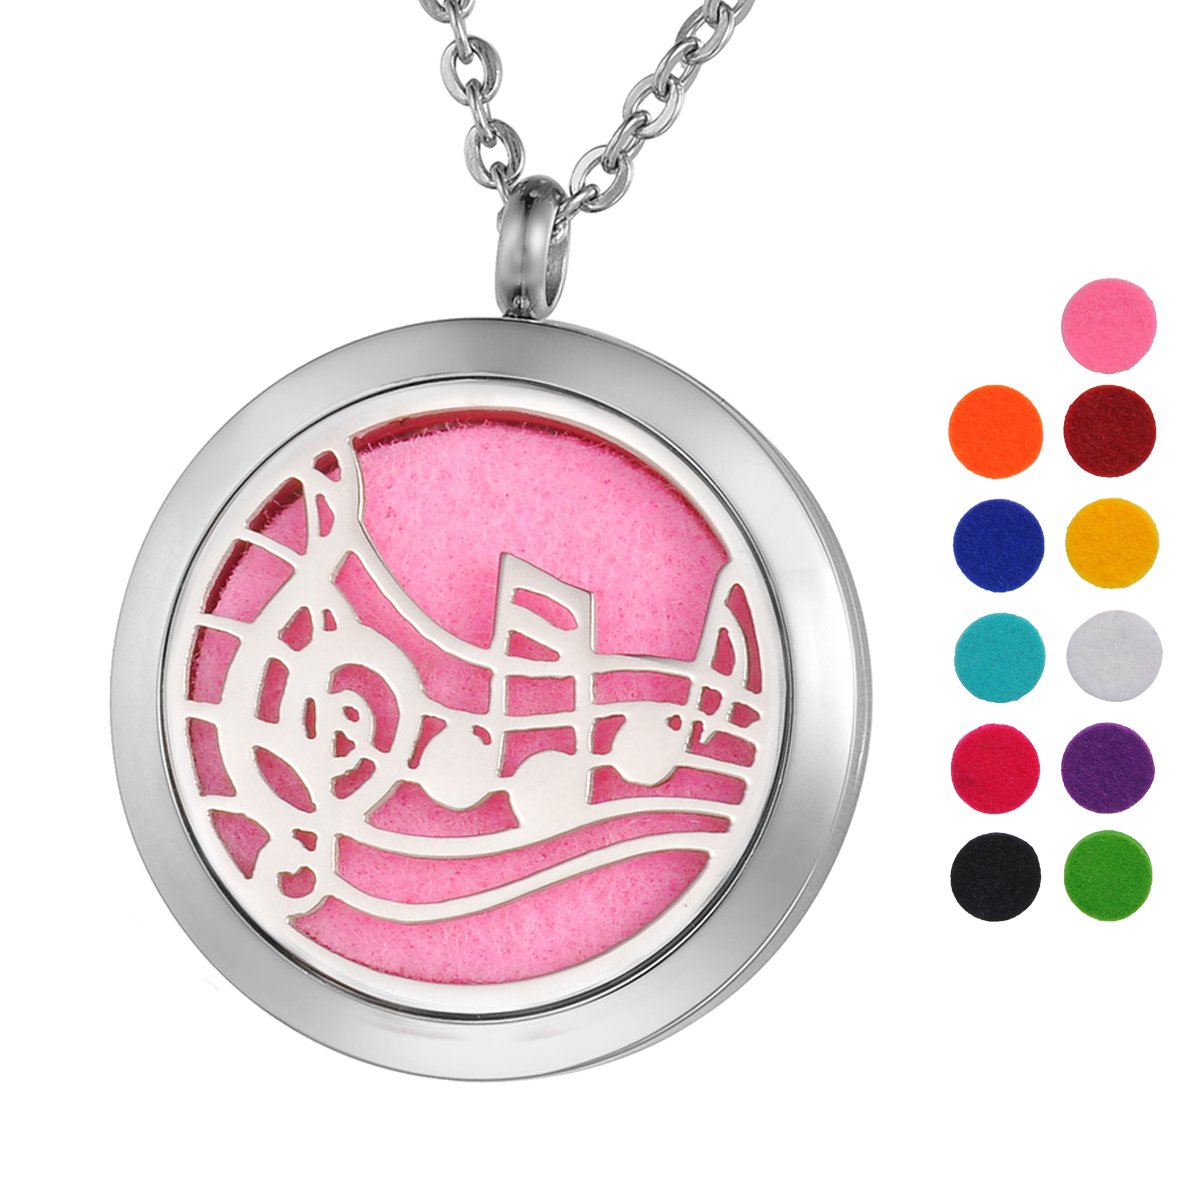 Aromatherapy Essential Oil Diffuser Necklace Music Note Locket Pendant with 12 Pads Silver Tone Supreme glory SGto-B264141